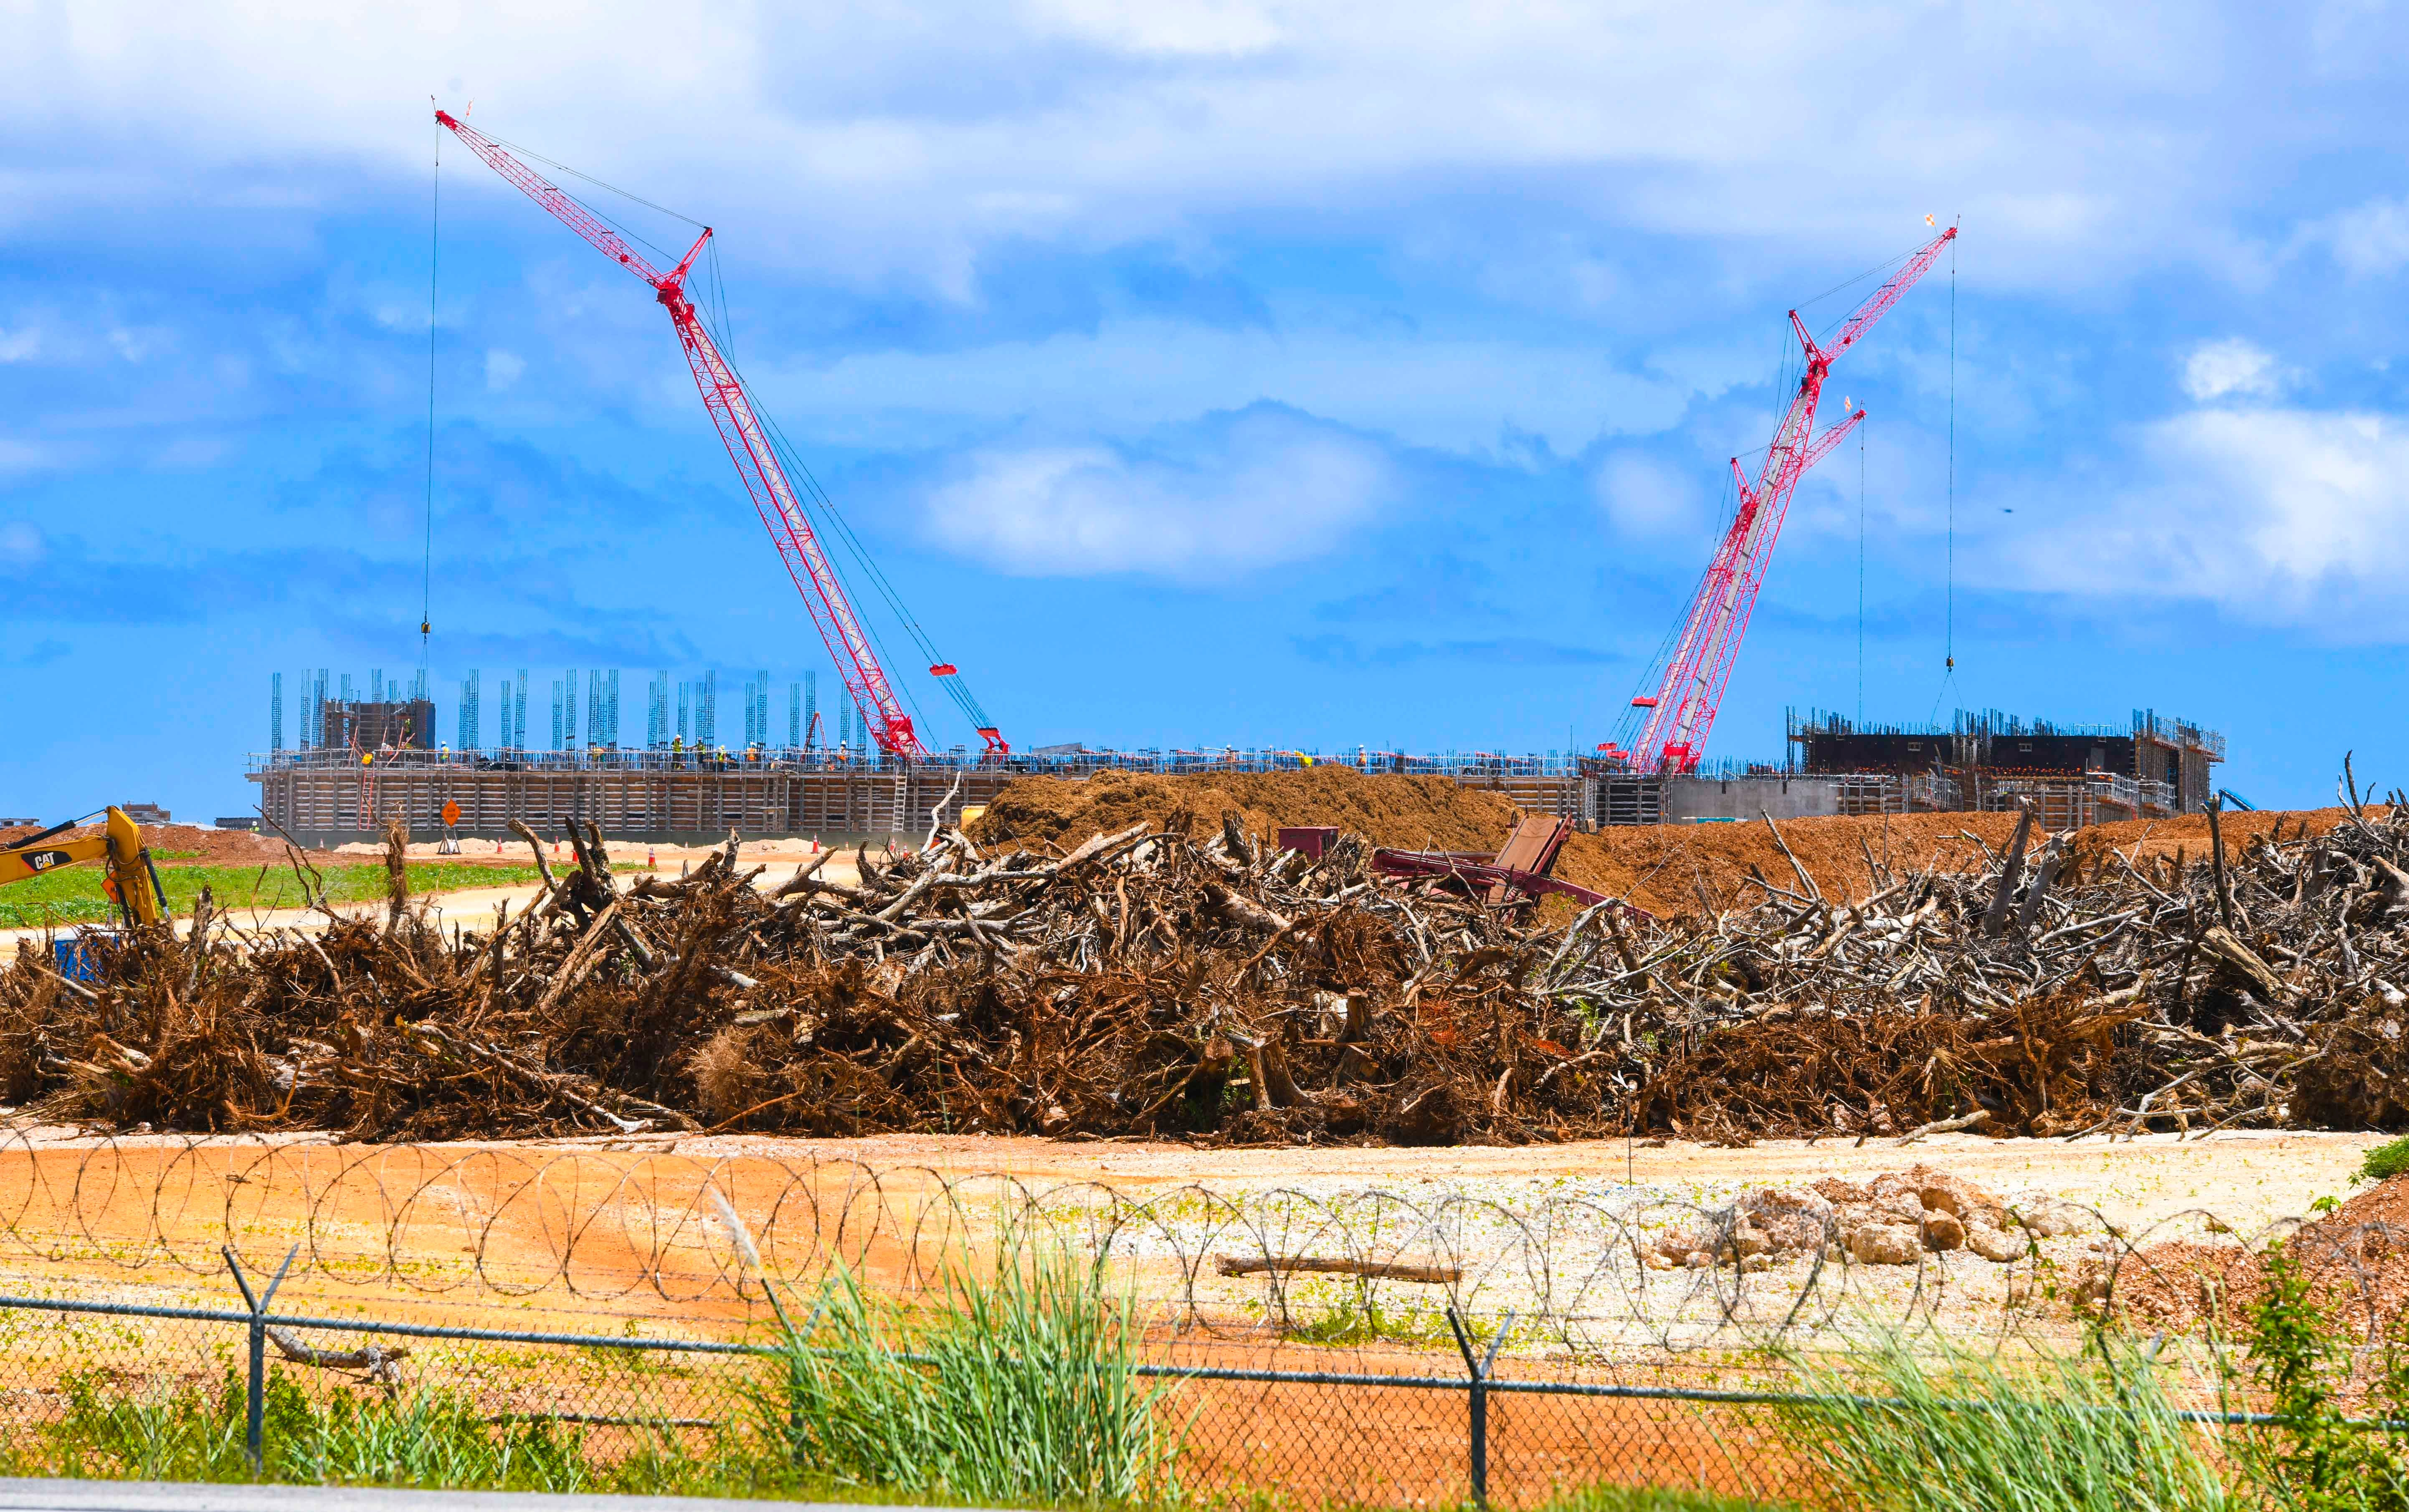 Trees and other vegetation, is piled within the fenced confines of Camp Blaz along Route 3, as building construction continues in Dededo, on Tuesday, June 15, 2021.